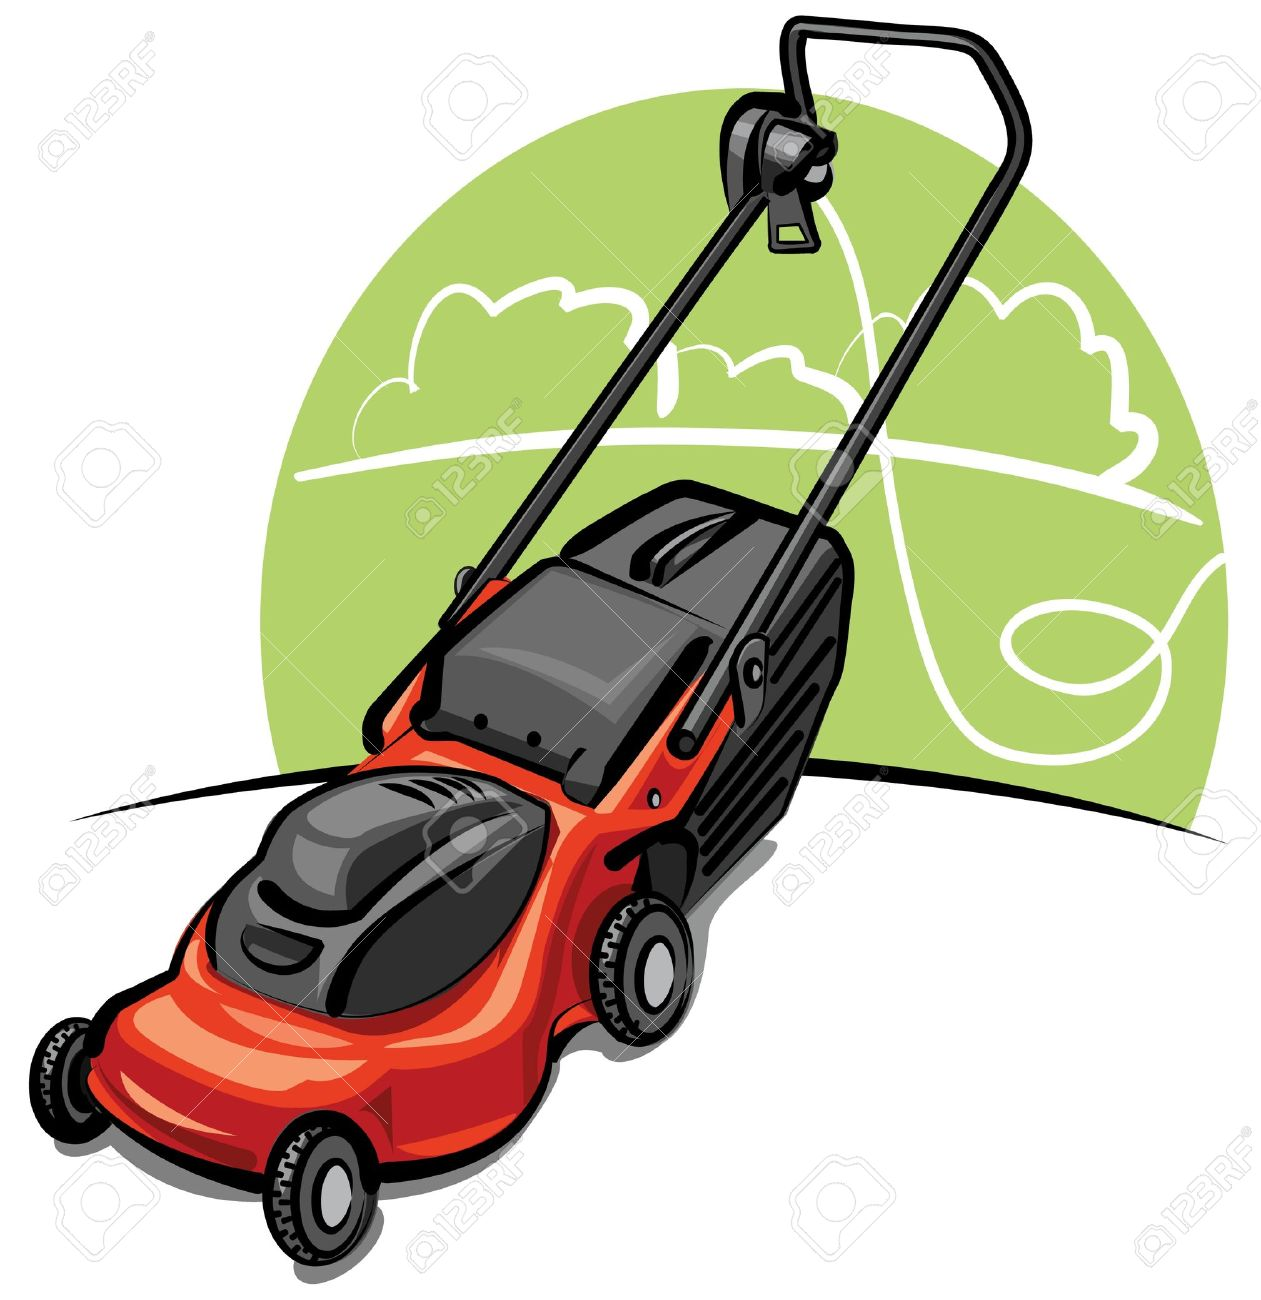 Lawn Mower Clipart No Background.